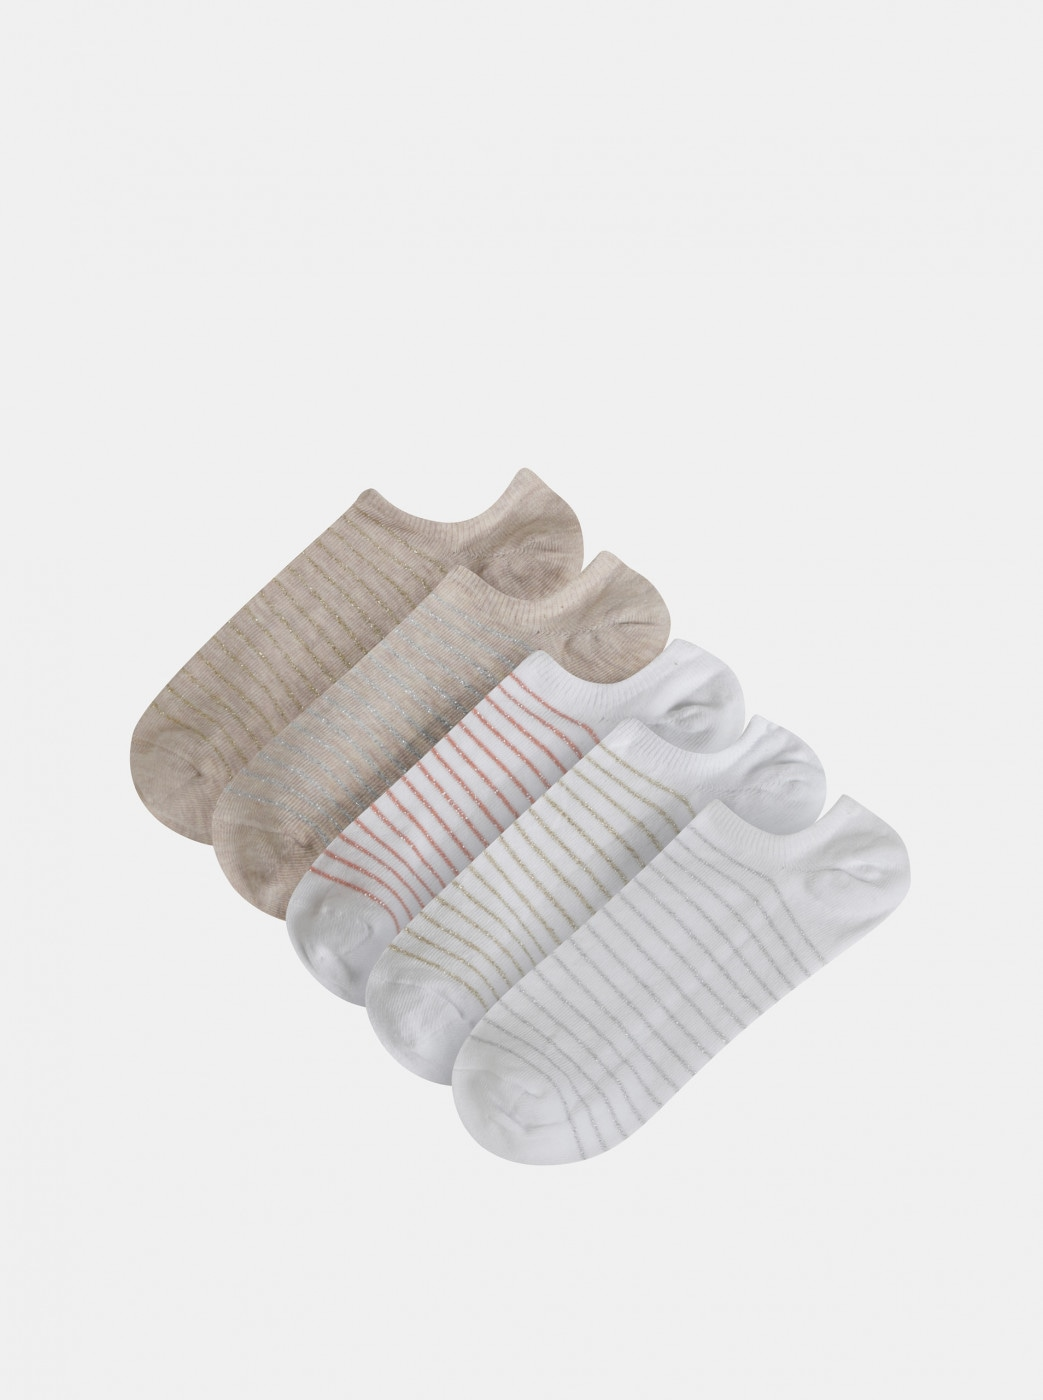 Set of five pairs of striped socks in white and beige TALLY WEiJL Damy